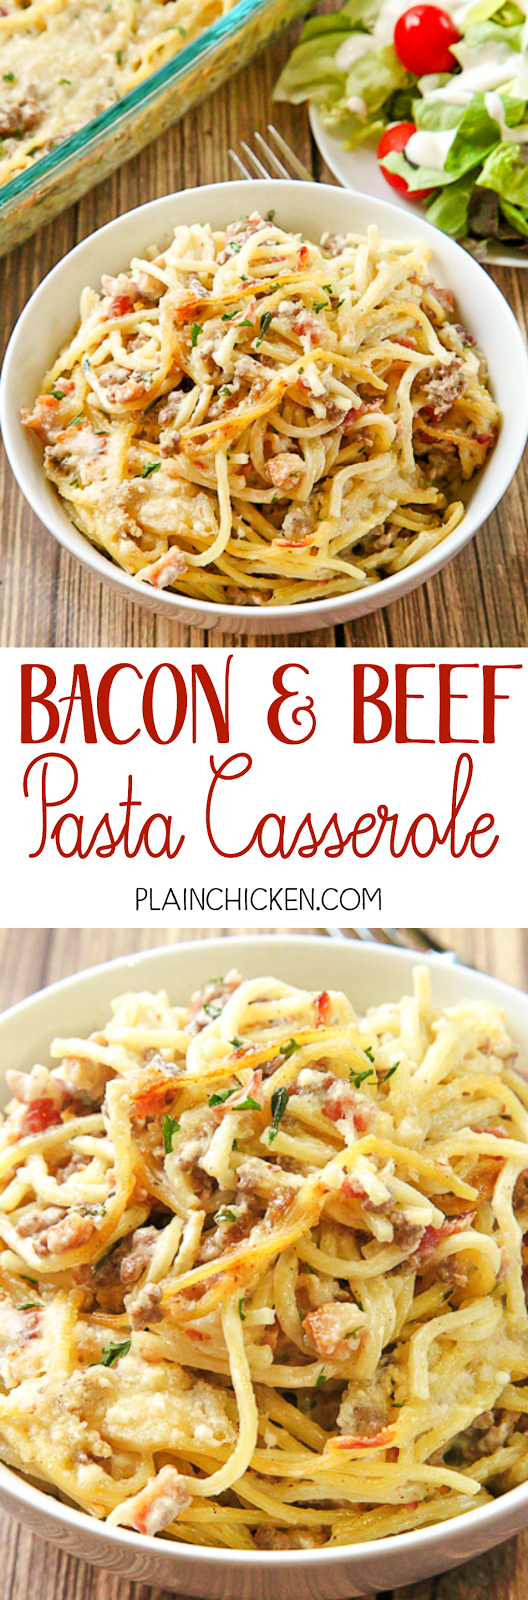 Bacon and Beef Pasta Casserole - INCREDIBLE! SO GOOD! Blown away with this easy casserole. Spaghetti, bacon, hamburger, onion, red pepper, Roasted Garlic Alfredo sauce, parsley and parmesan cheese. This was out of this world delicious! Tasted like carbonara. It is now in our dinner rotation!